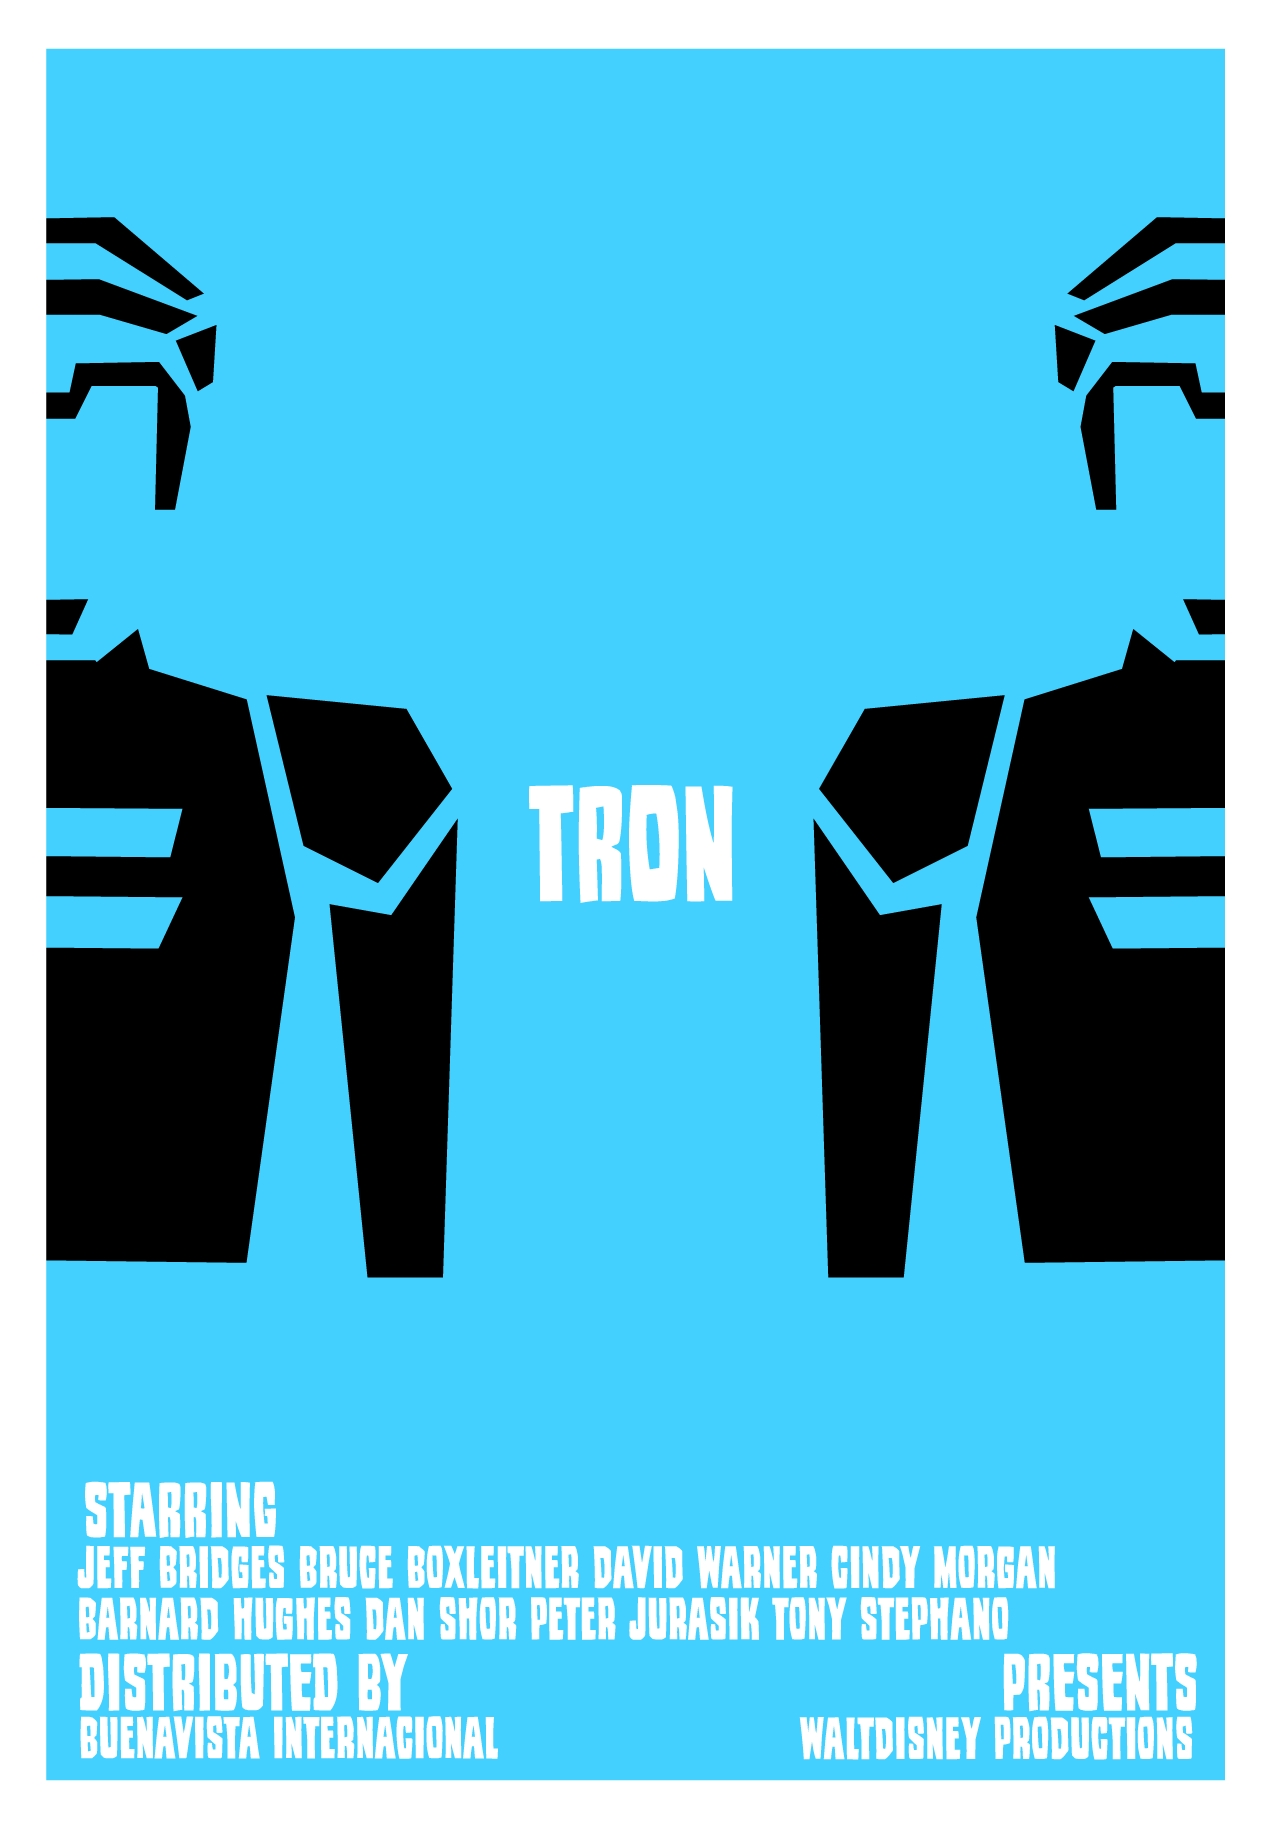 tron_posters_2020_4